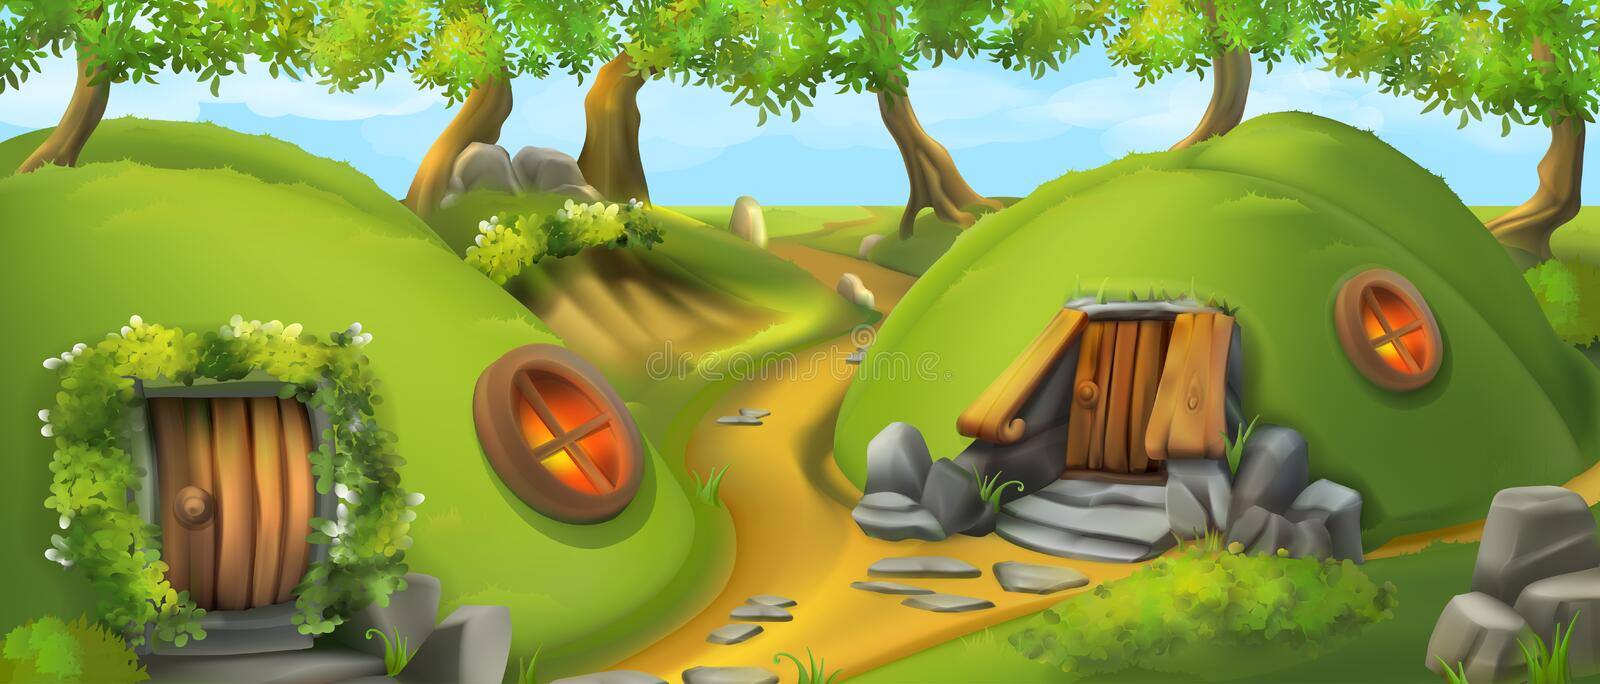 Fairy Tale Village. Leprechaun house. Landscape vector illustration royalty free illustration